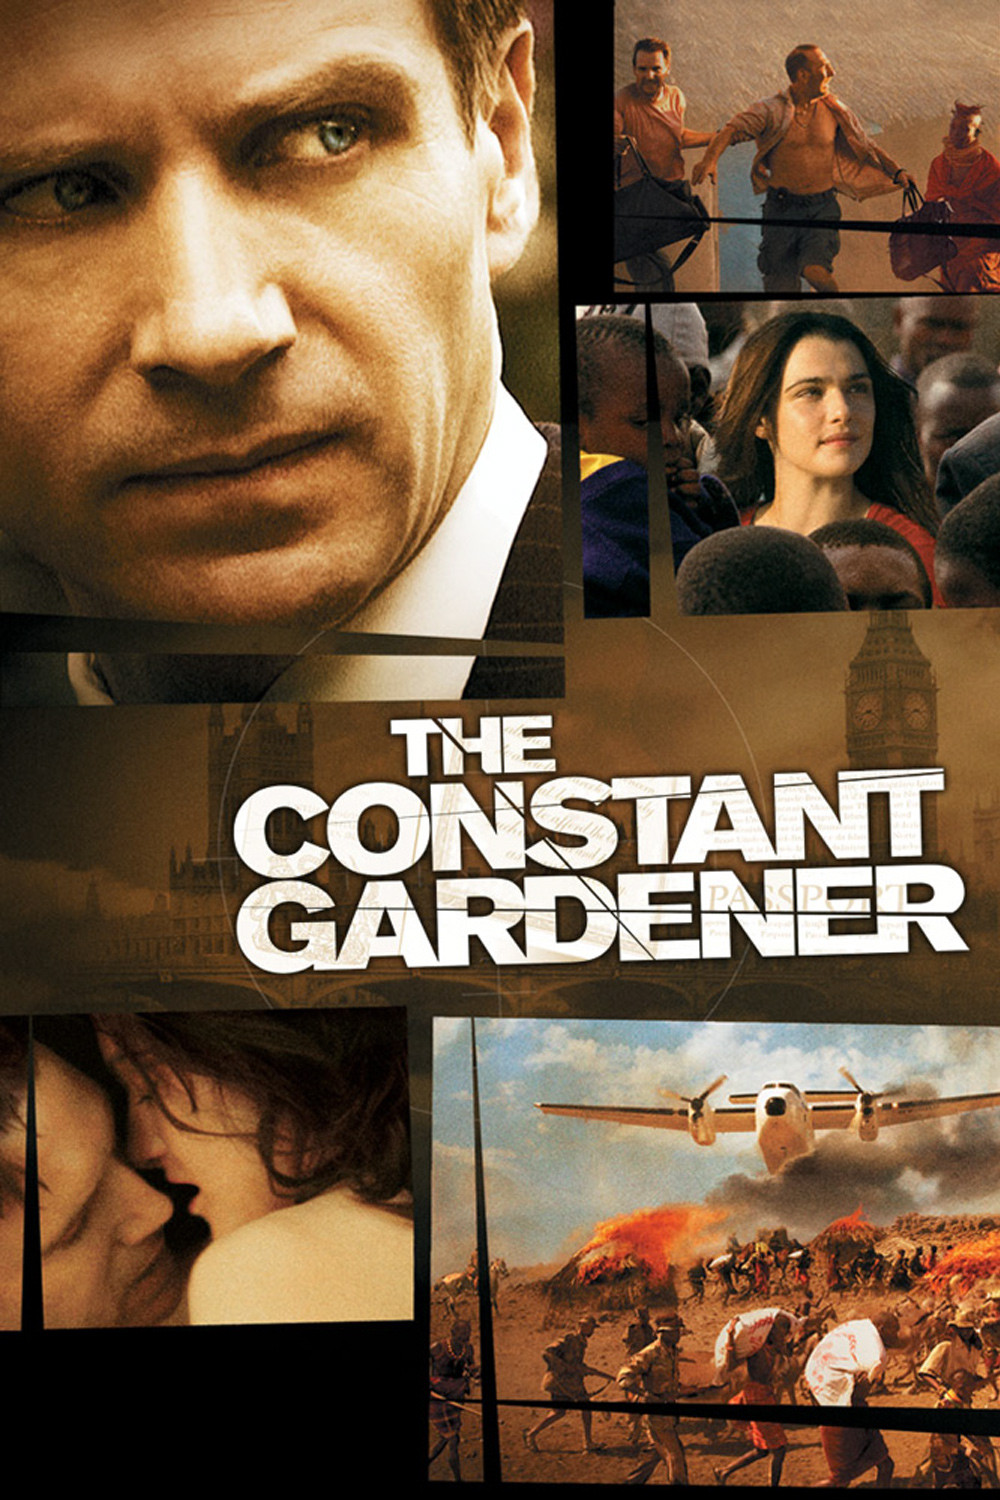 The Constant Gardener promotional image